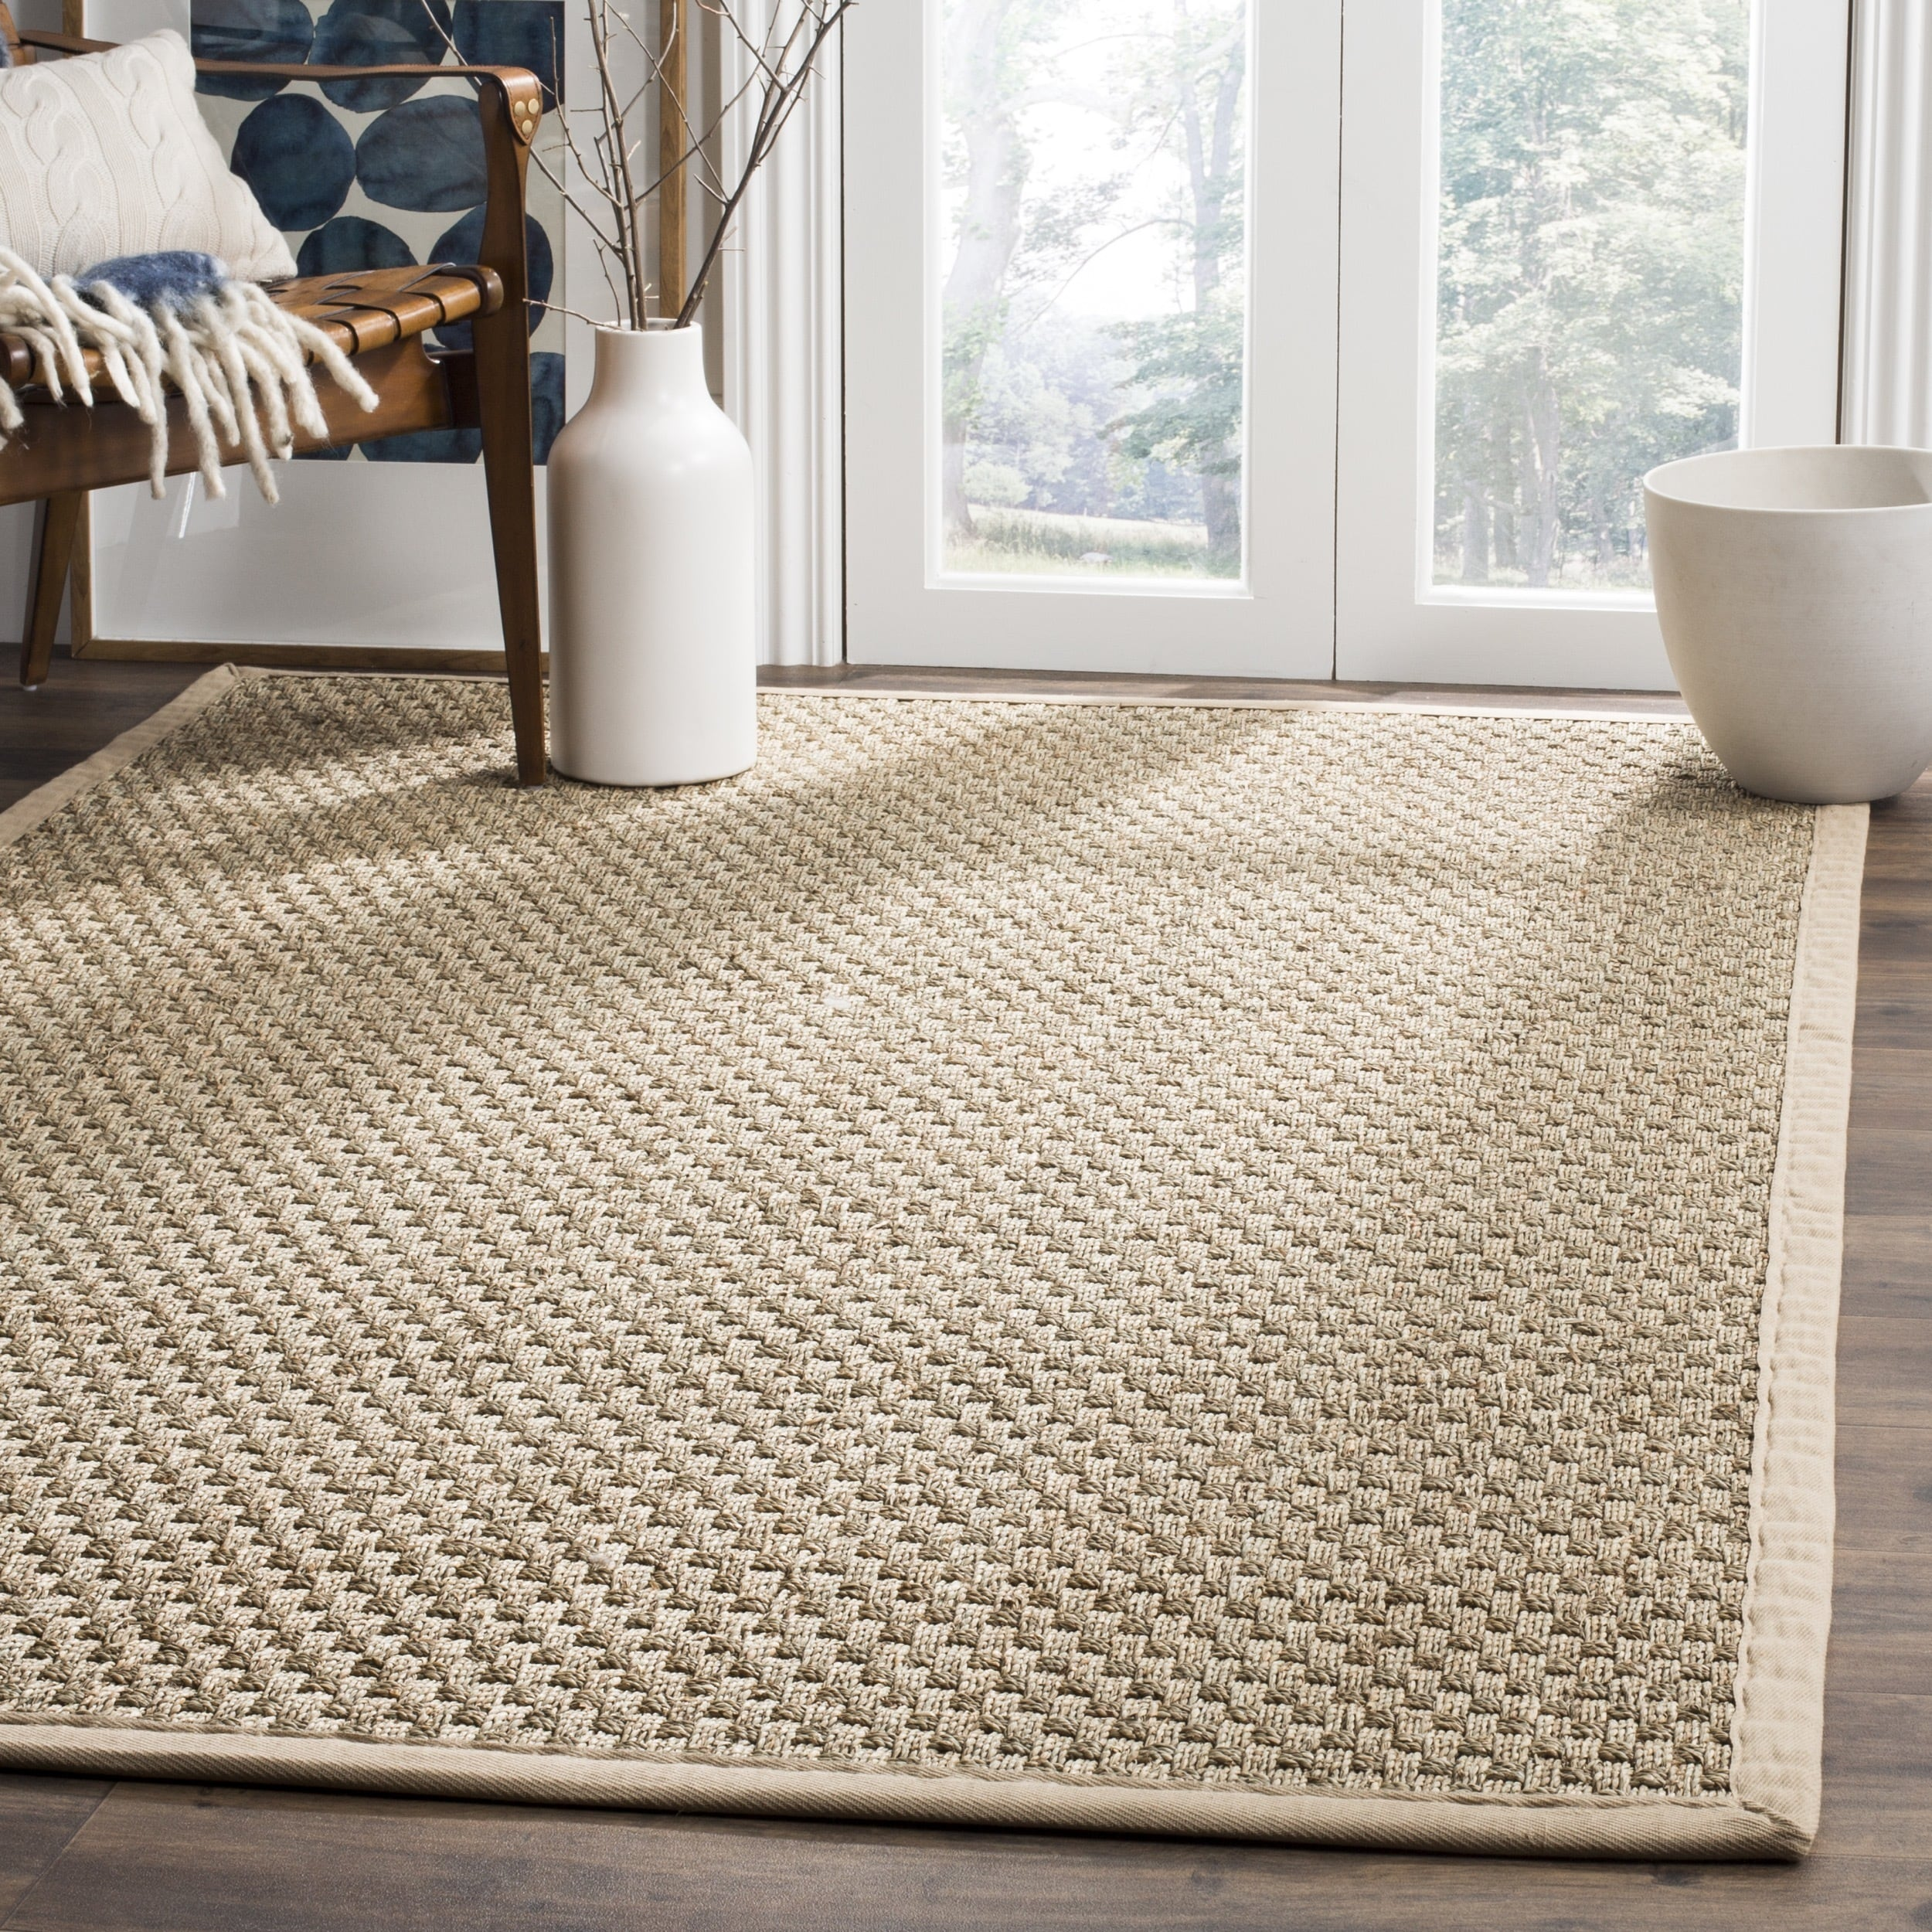 very ability clean rugs reviews are strong endurance seagrass for have resist high easy to they suitable affordable traffic marked rug stains and